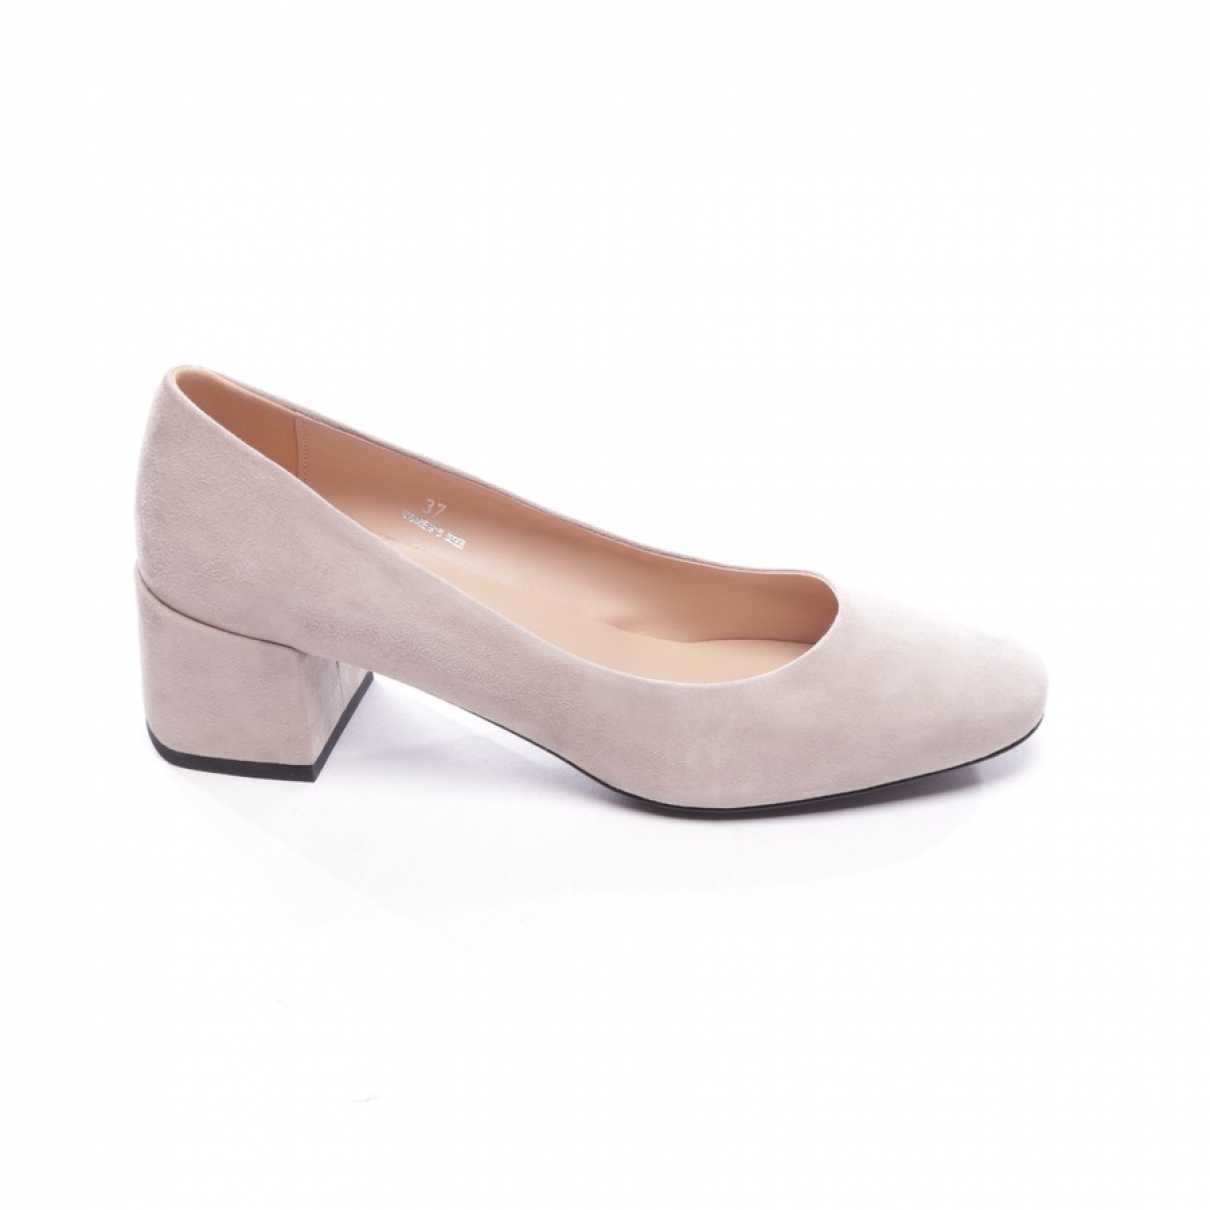 Tod's \N Beige Leather Heels for Women 39.5 EU